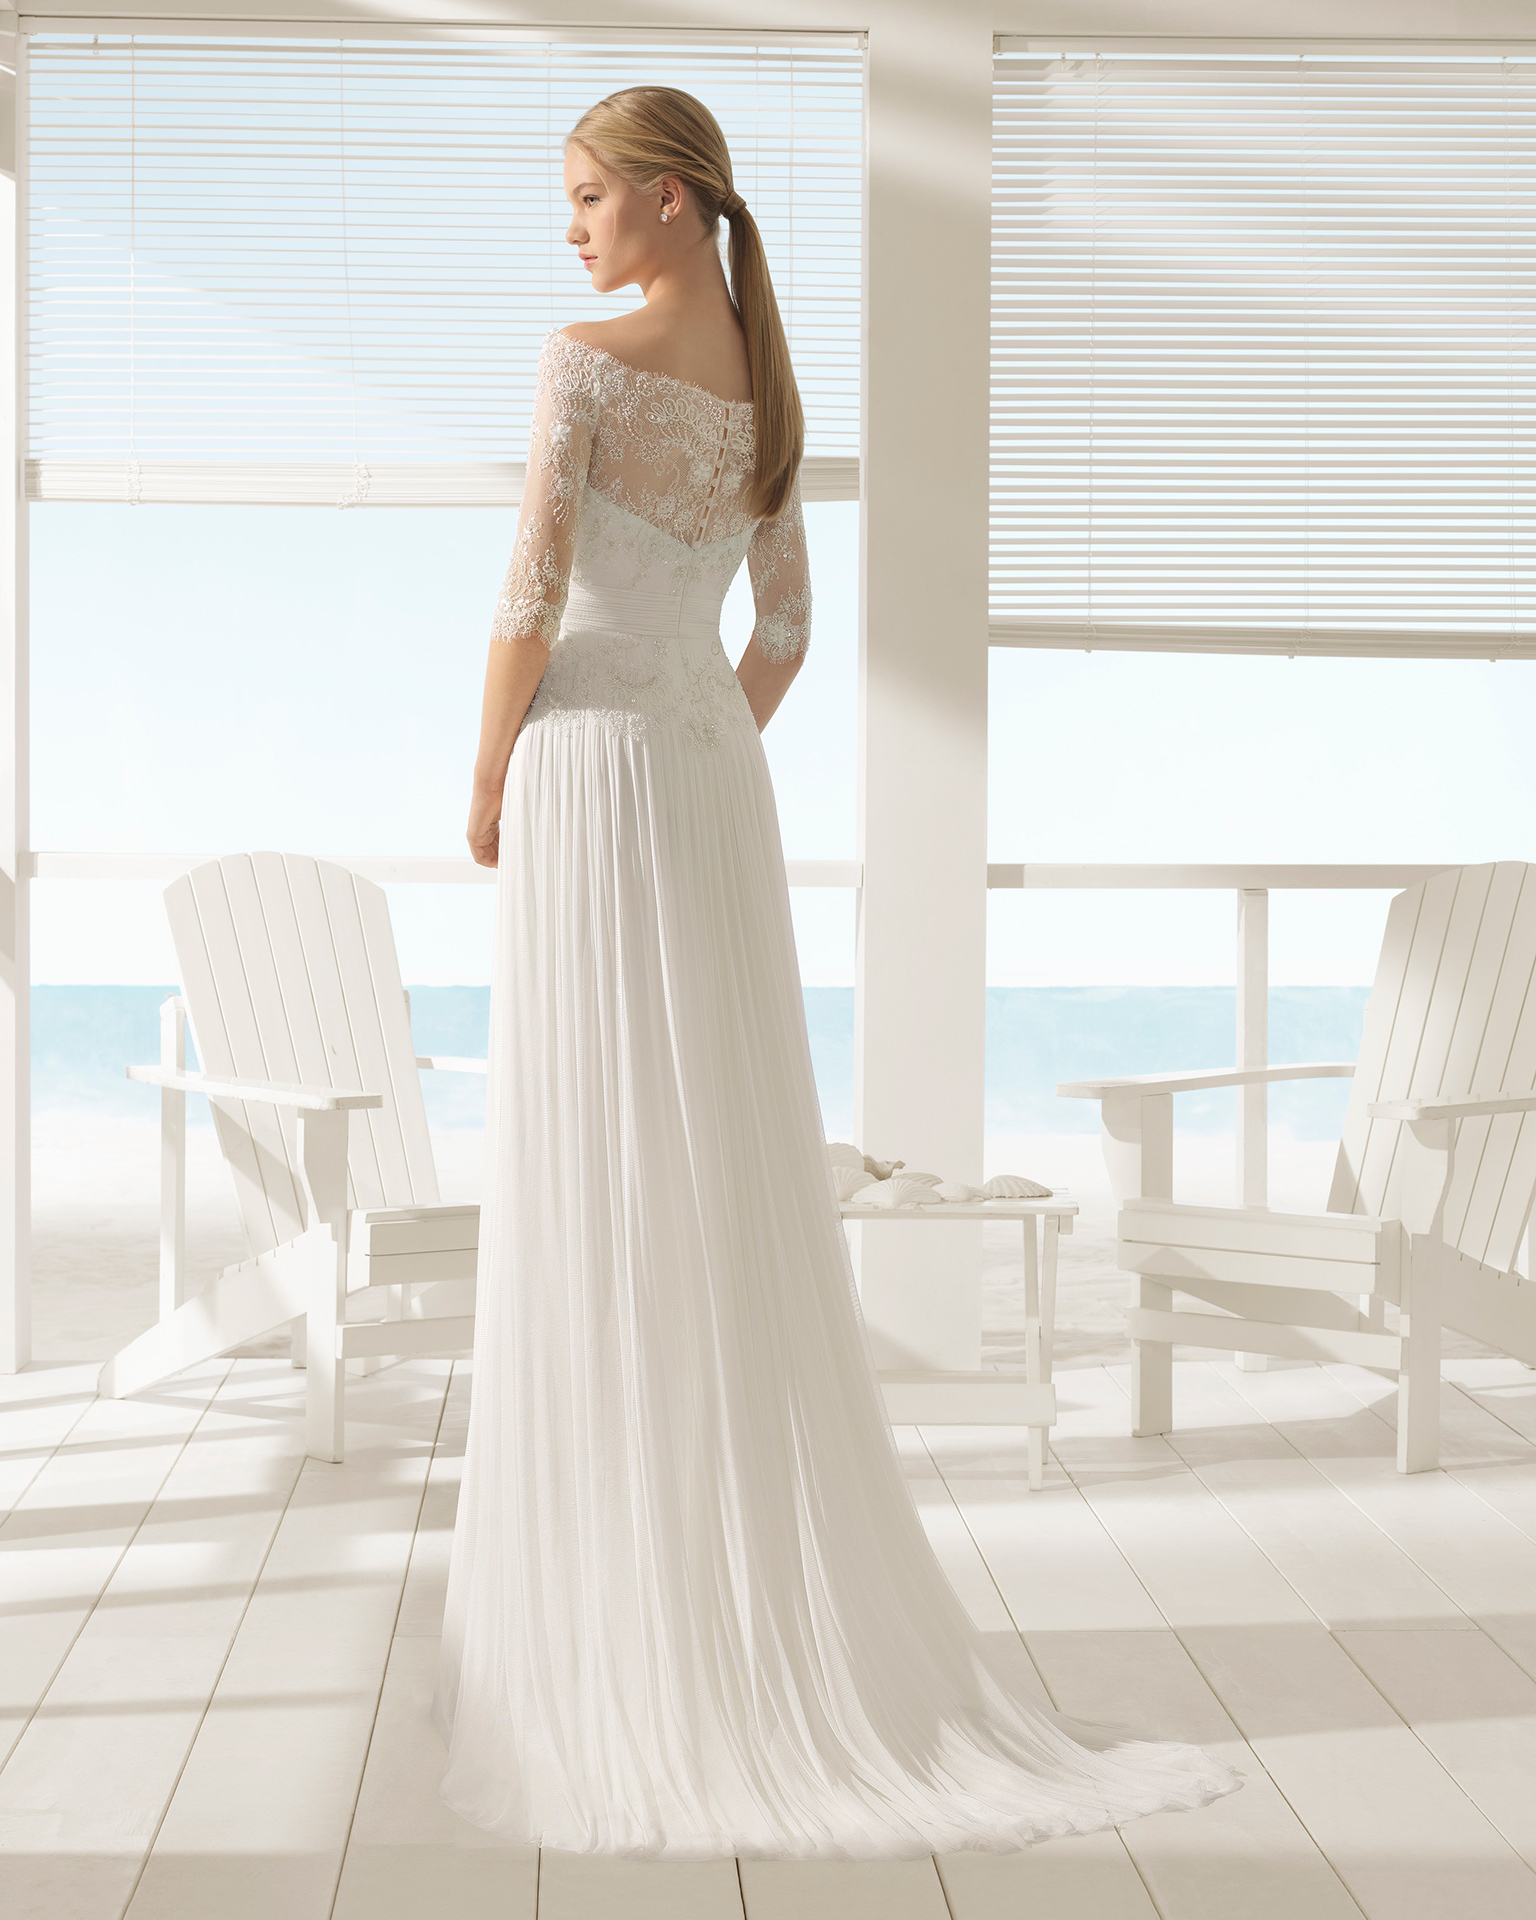 Boho-style beaded lace and silk mousseline wedding dress with long sleeves and sweetheart neckline with illusion overlay.